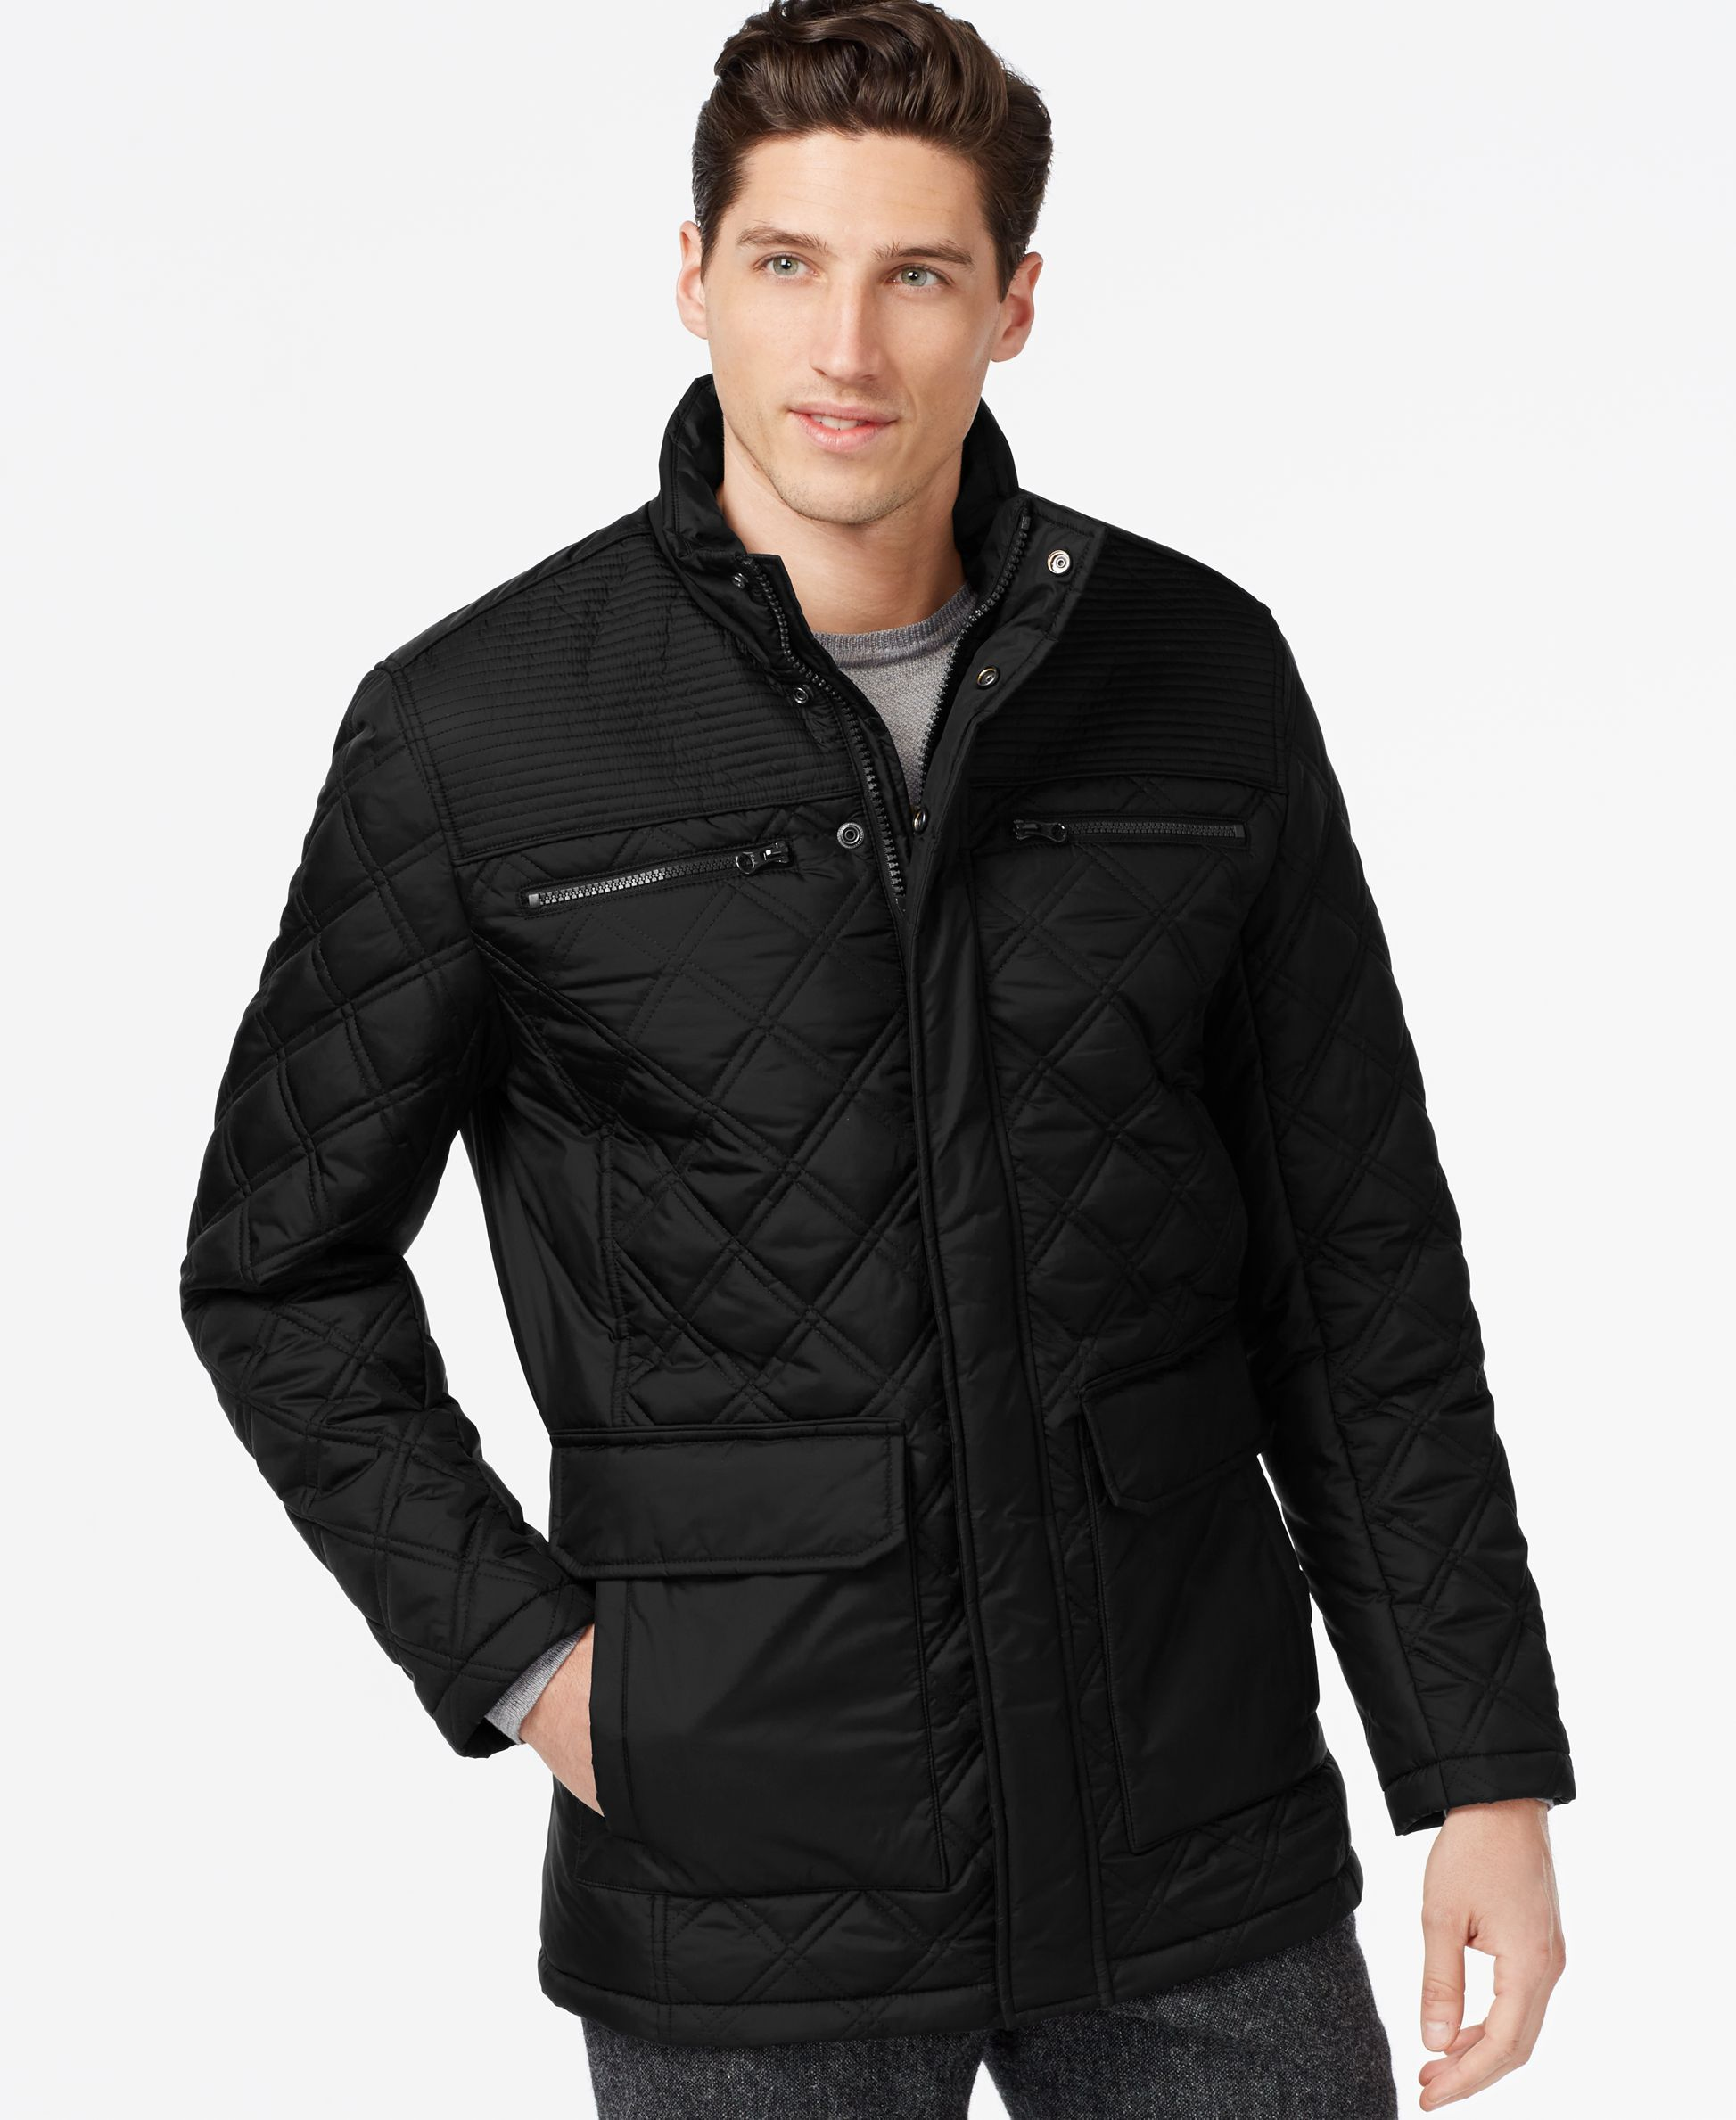 Marc New York Fulton Quilted Jacket Jackets, Marc new